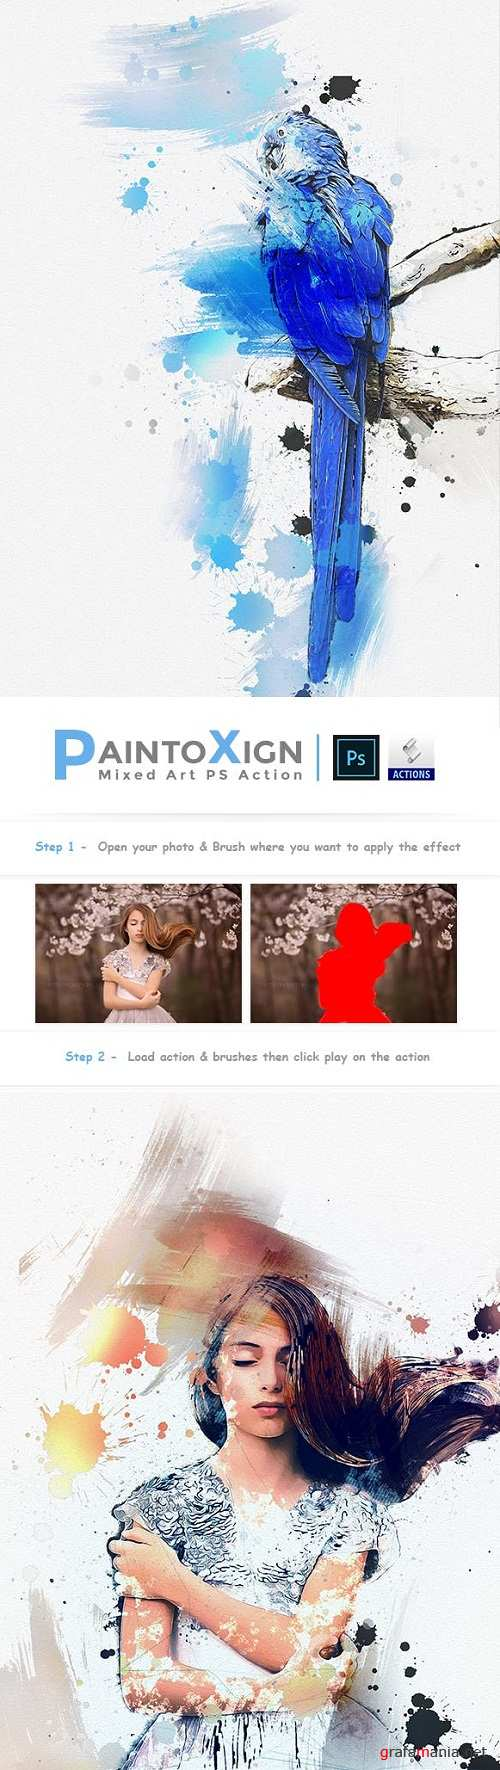 PaintoXign | Mixed Art PS Action 23106638